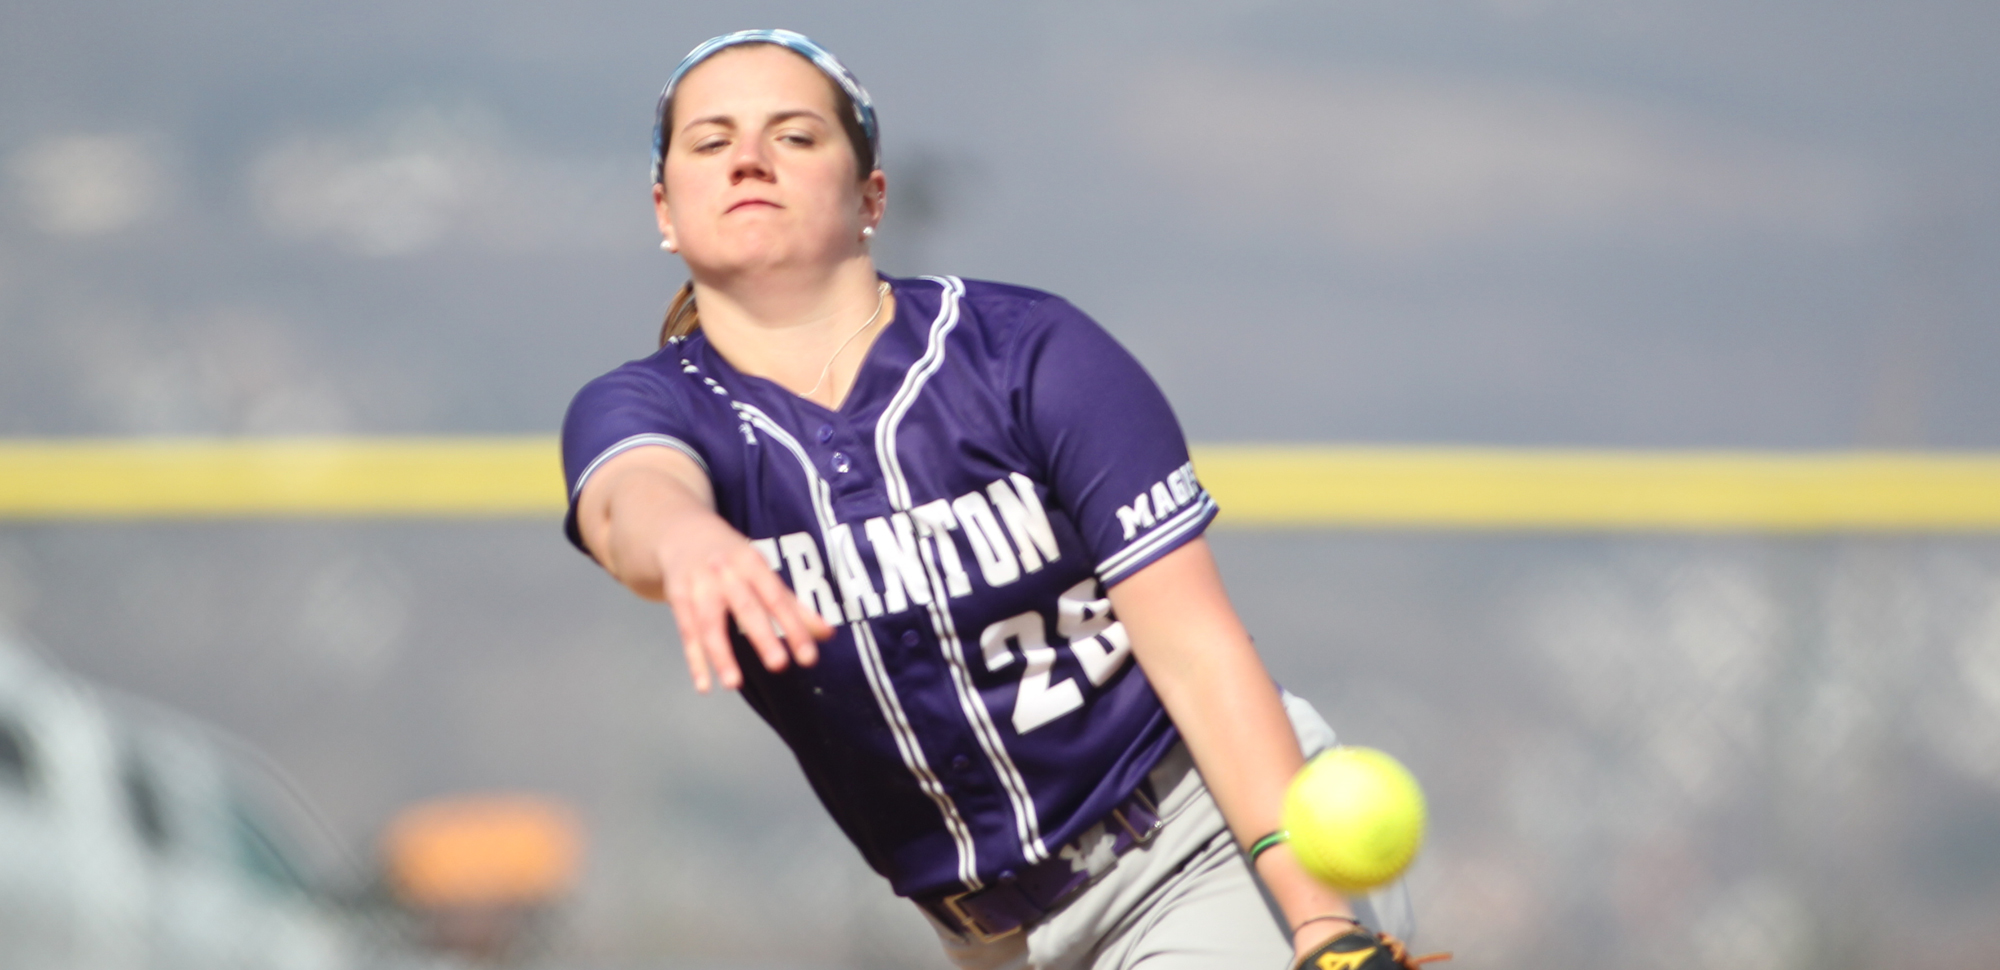 Sophomore Meaghan Dowdell improve to 8-1 on the season on Monday and also added a pair of hits while scoring two runs in Scranton's game two win over Cedar Crest. © Photo by Timothy R. Dougherty / doubleeaglephotography.com